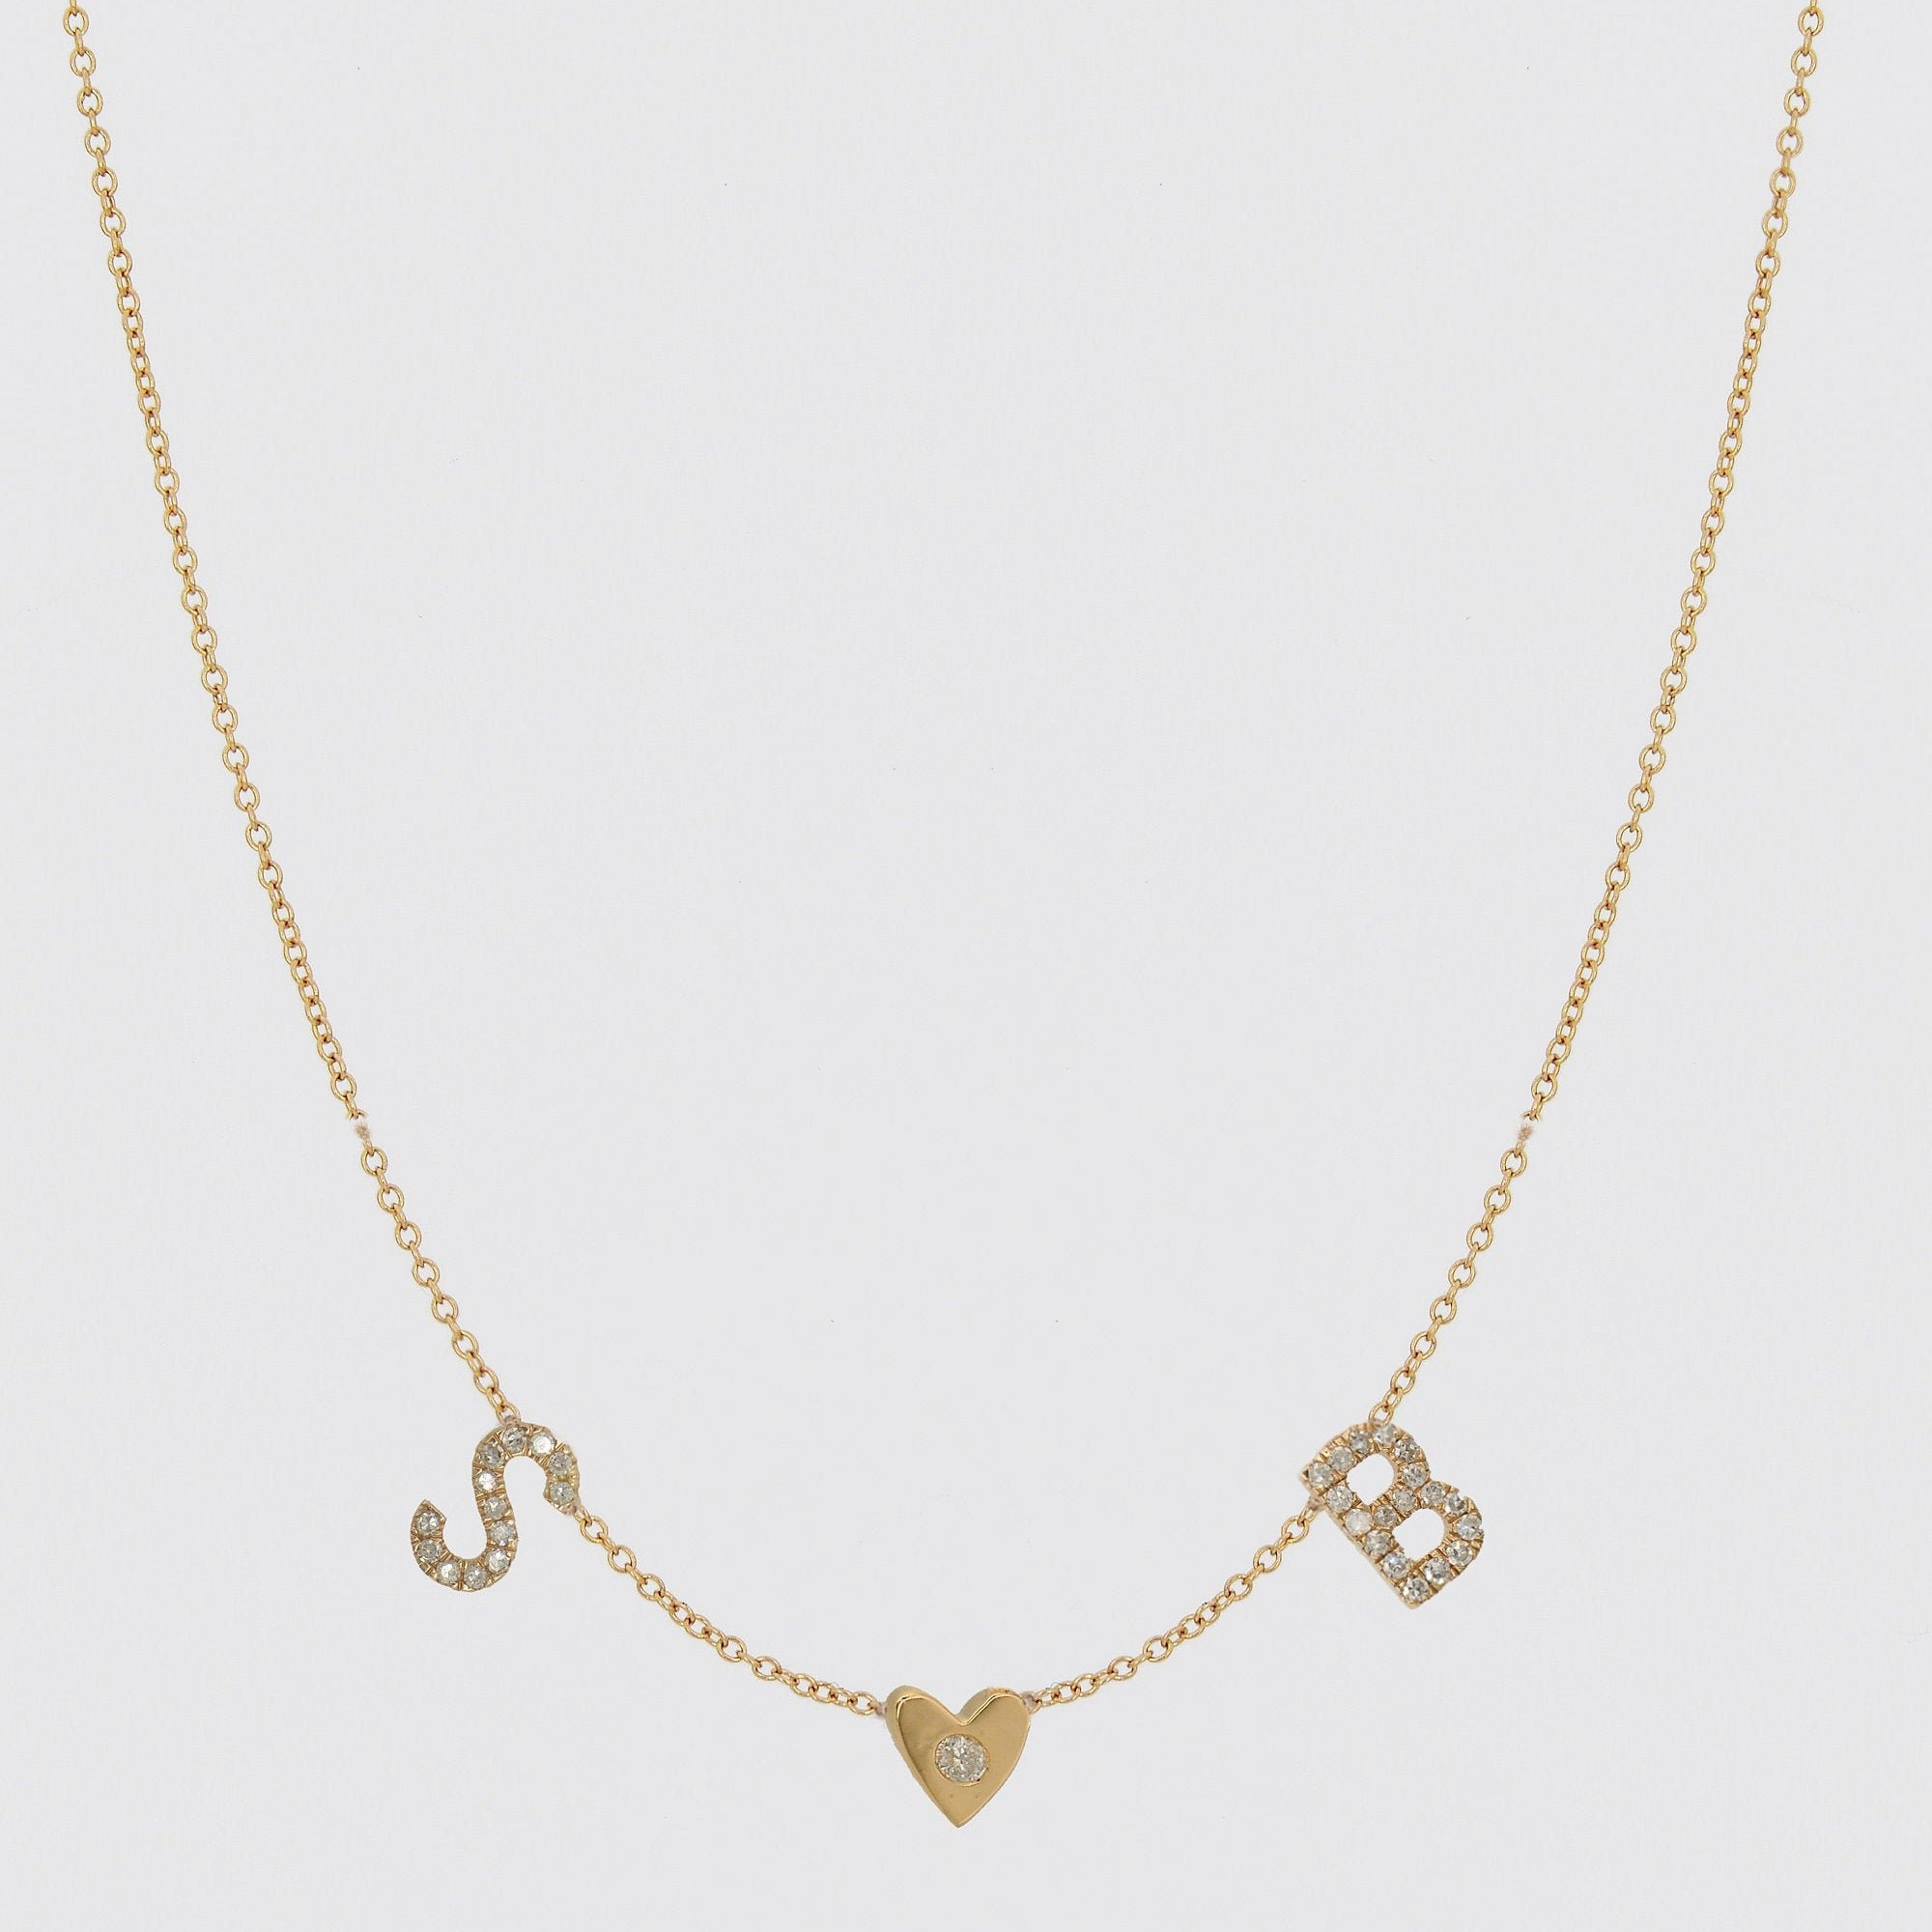 Diamond Initials Necklace with Heart, Alphabet Letter Necklace